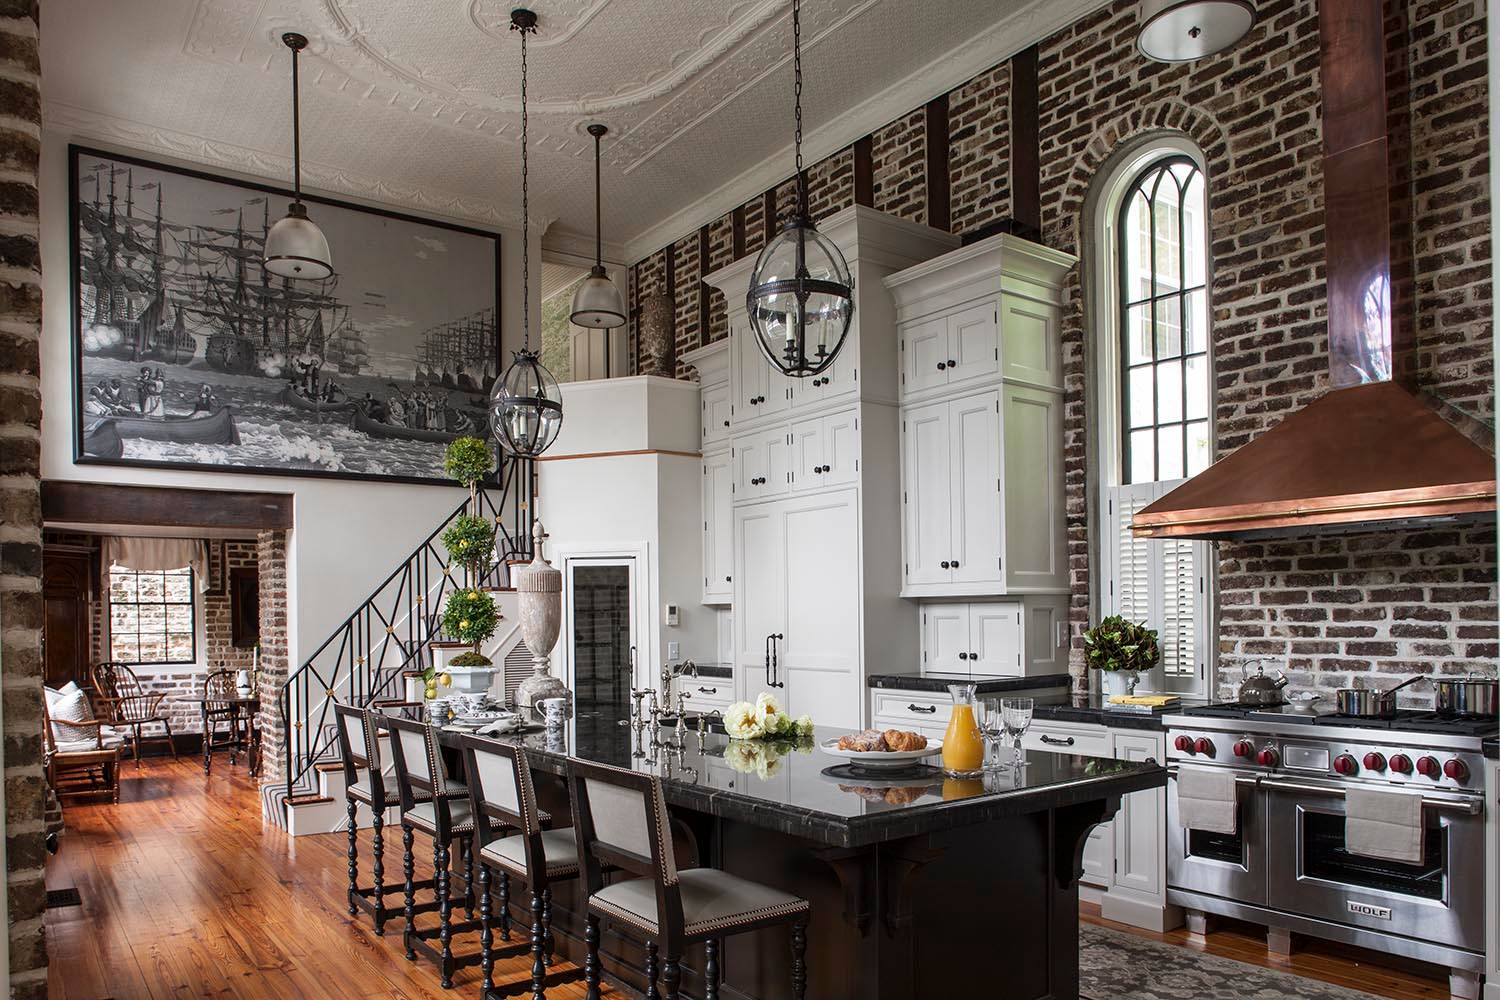 75 Beautiful Victorian Galley Kitchen Pictures Ideas April 2021 Houzz